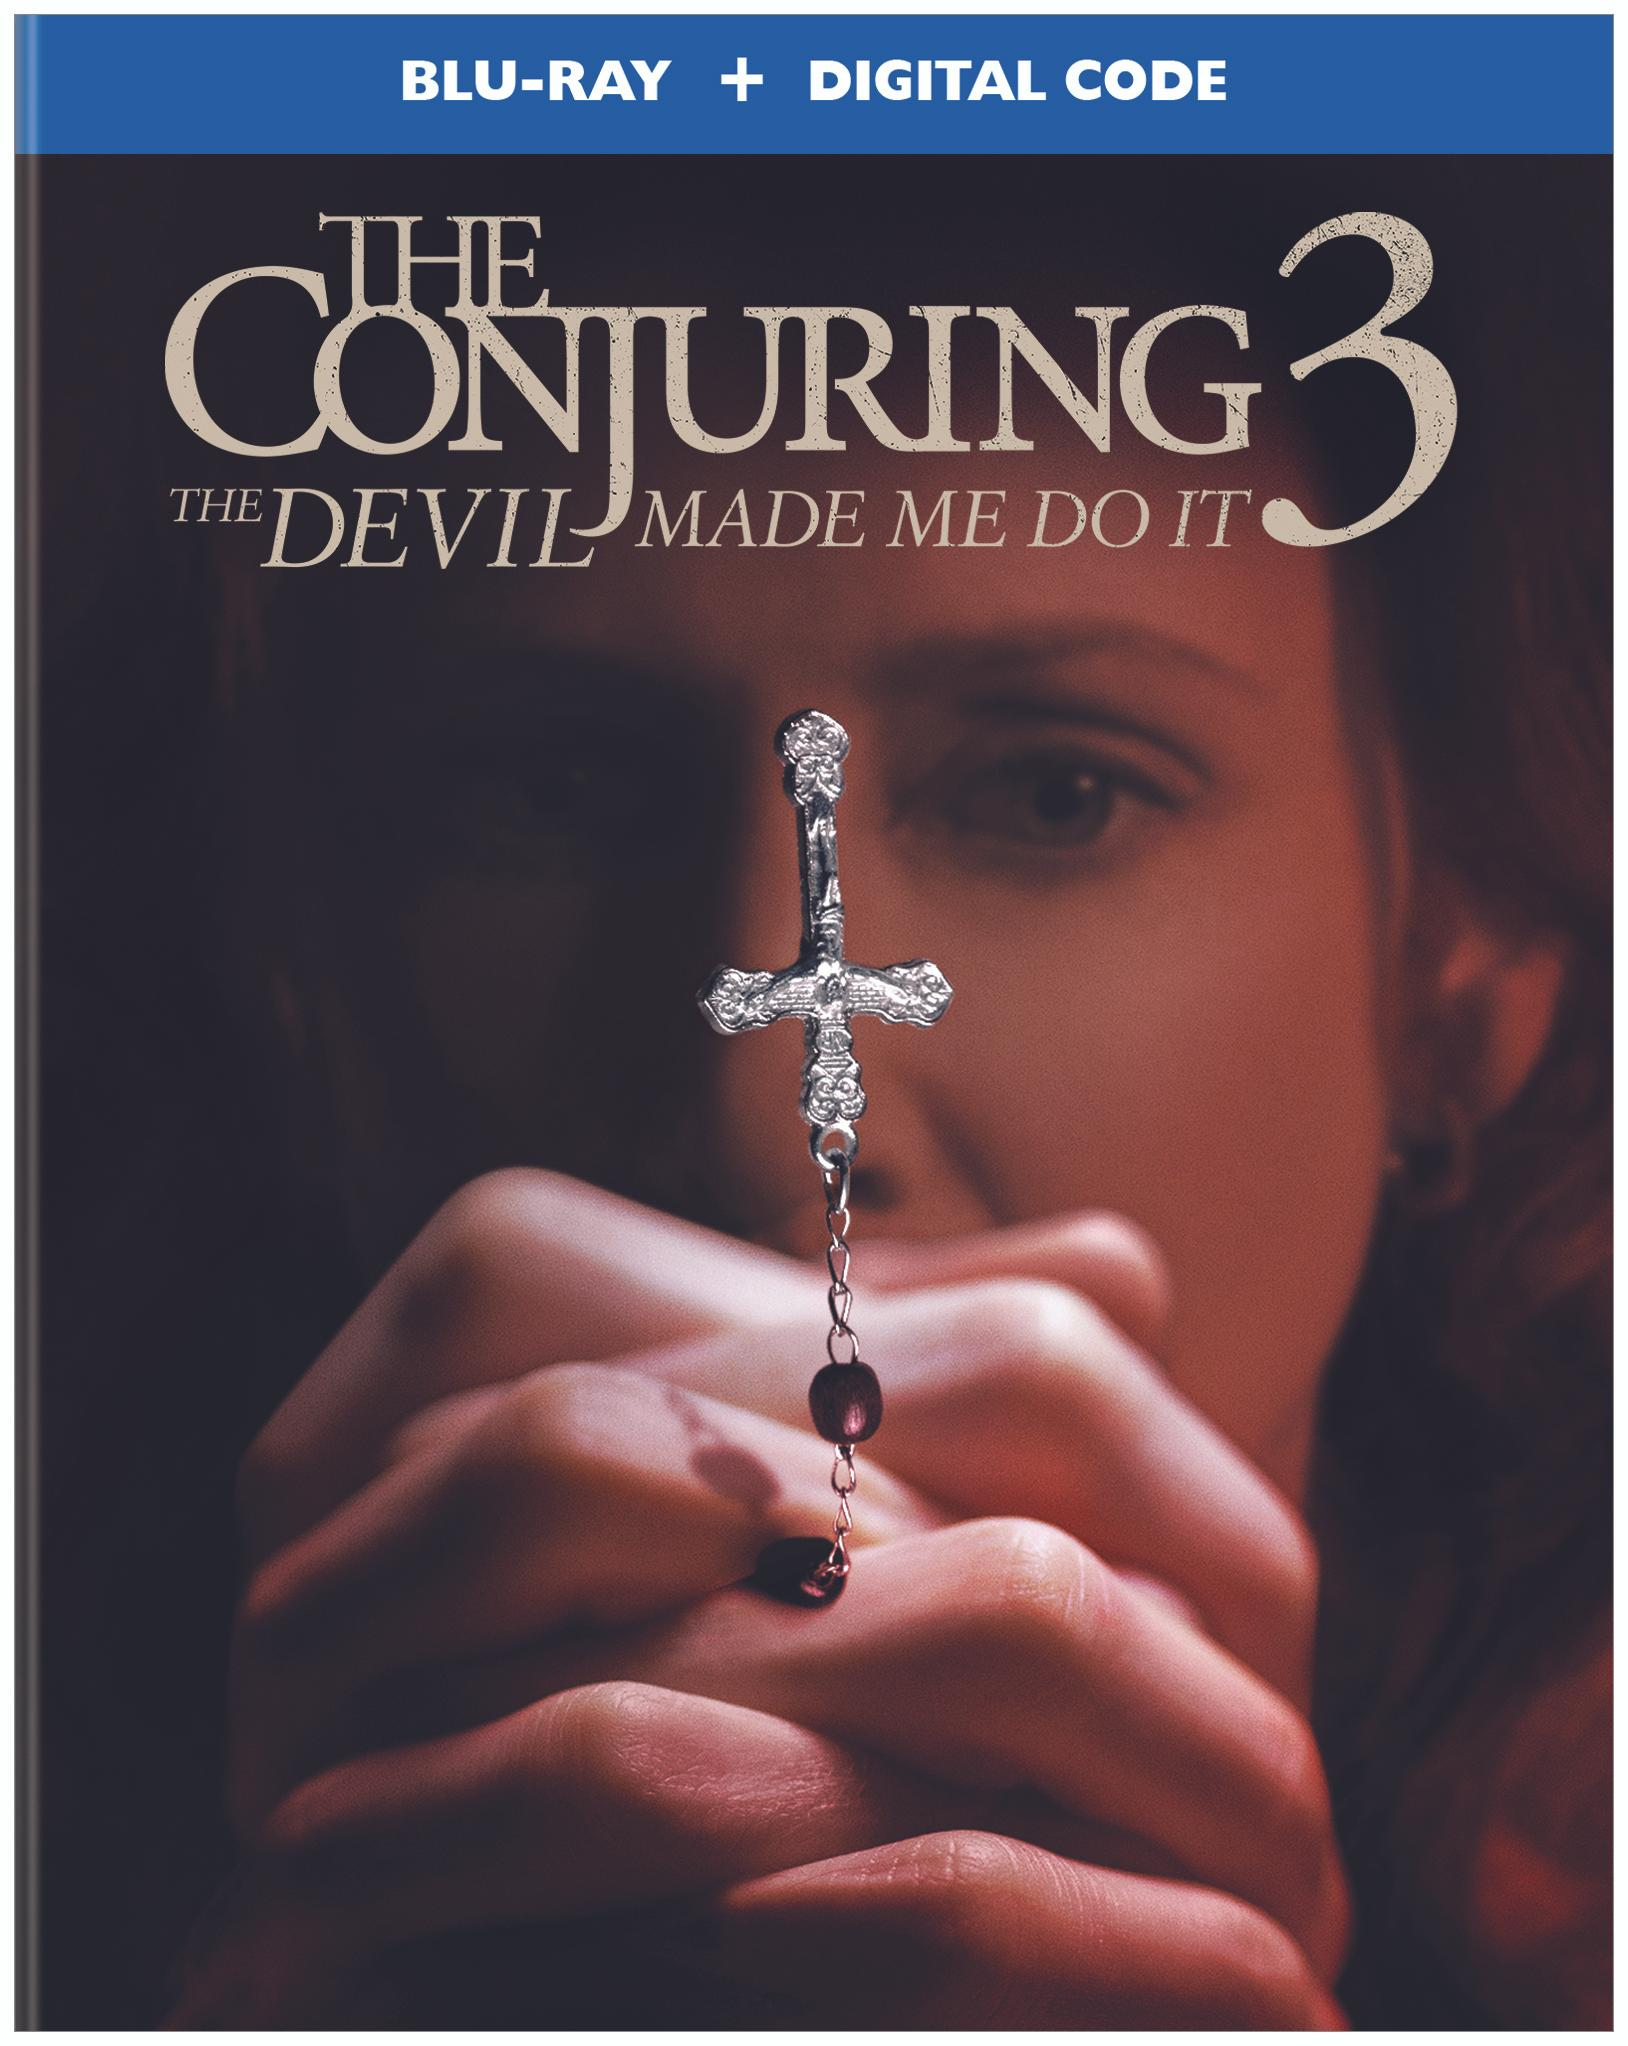 The Conjuring 3: The Devil Made Me Do It Blu-ray Review